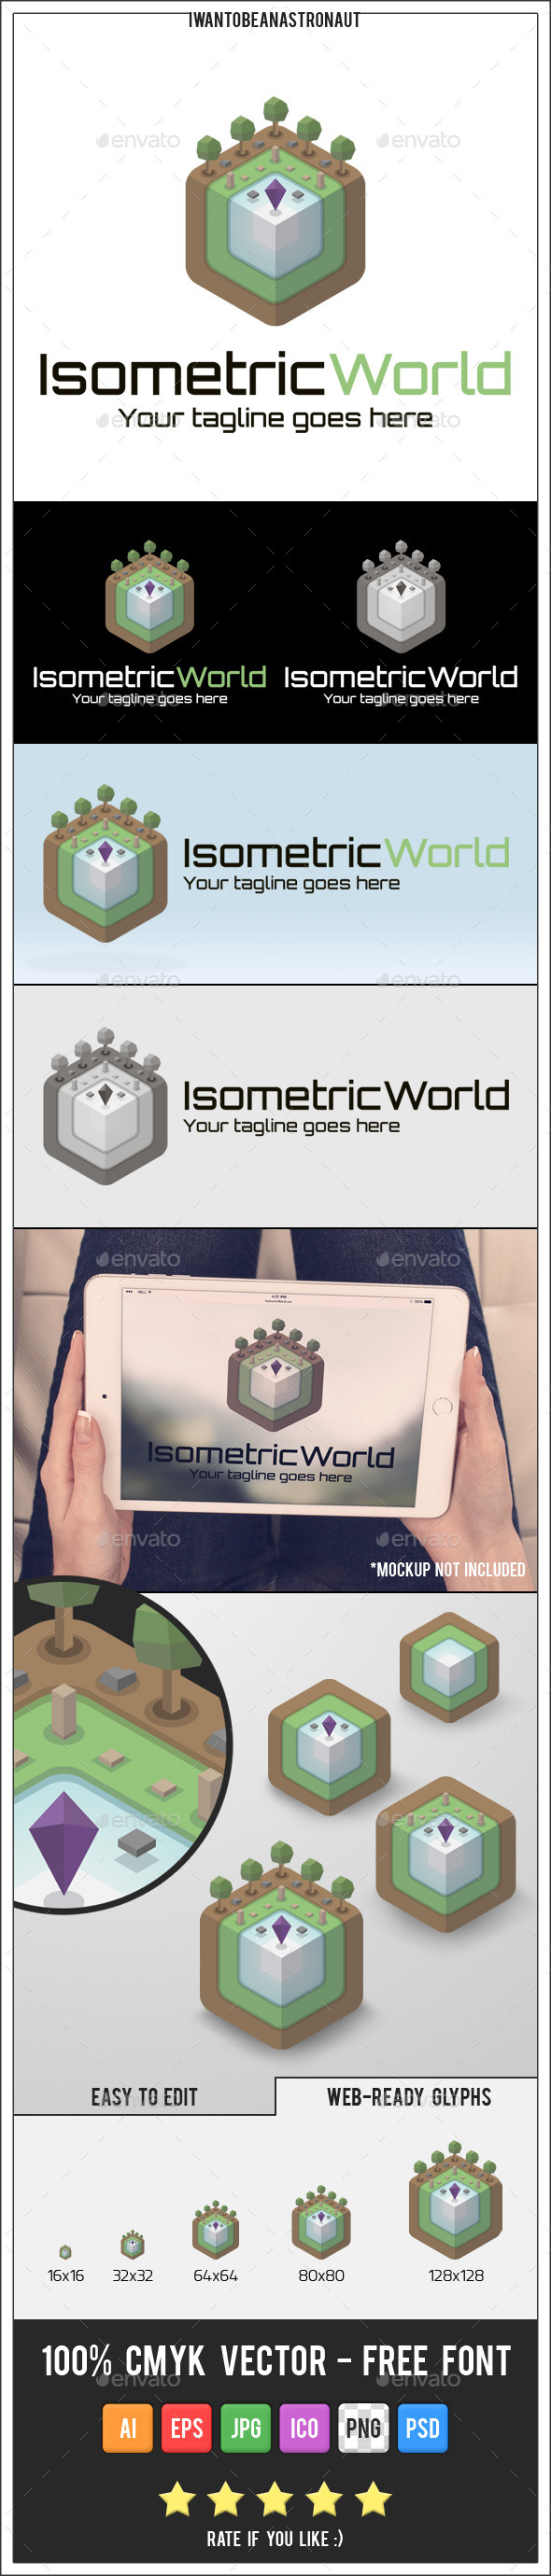 Isometric World Logo